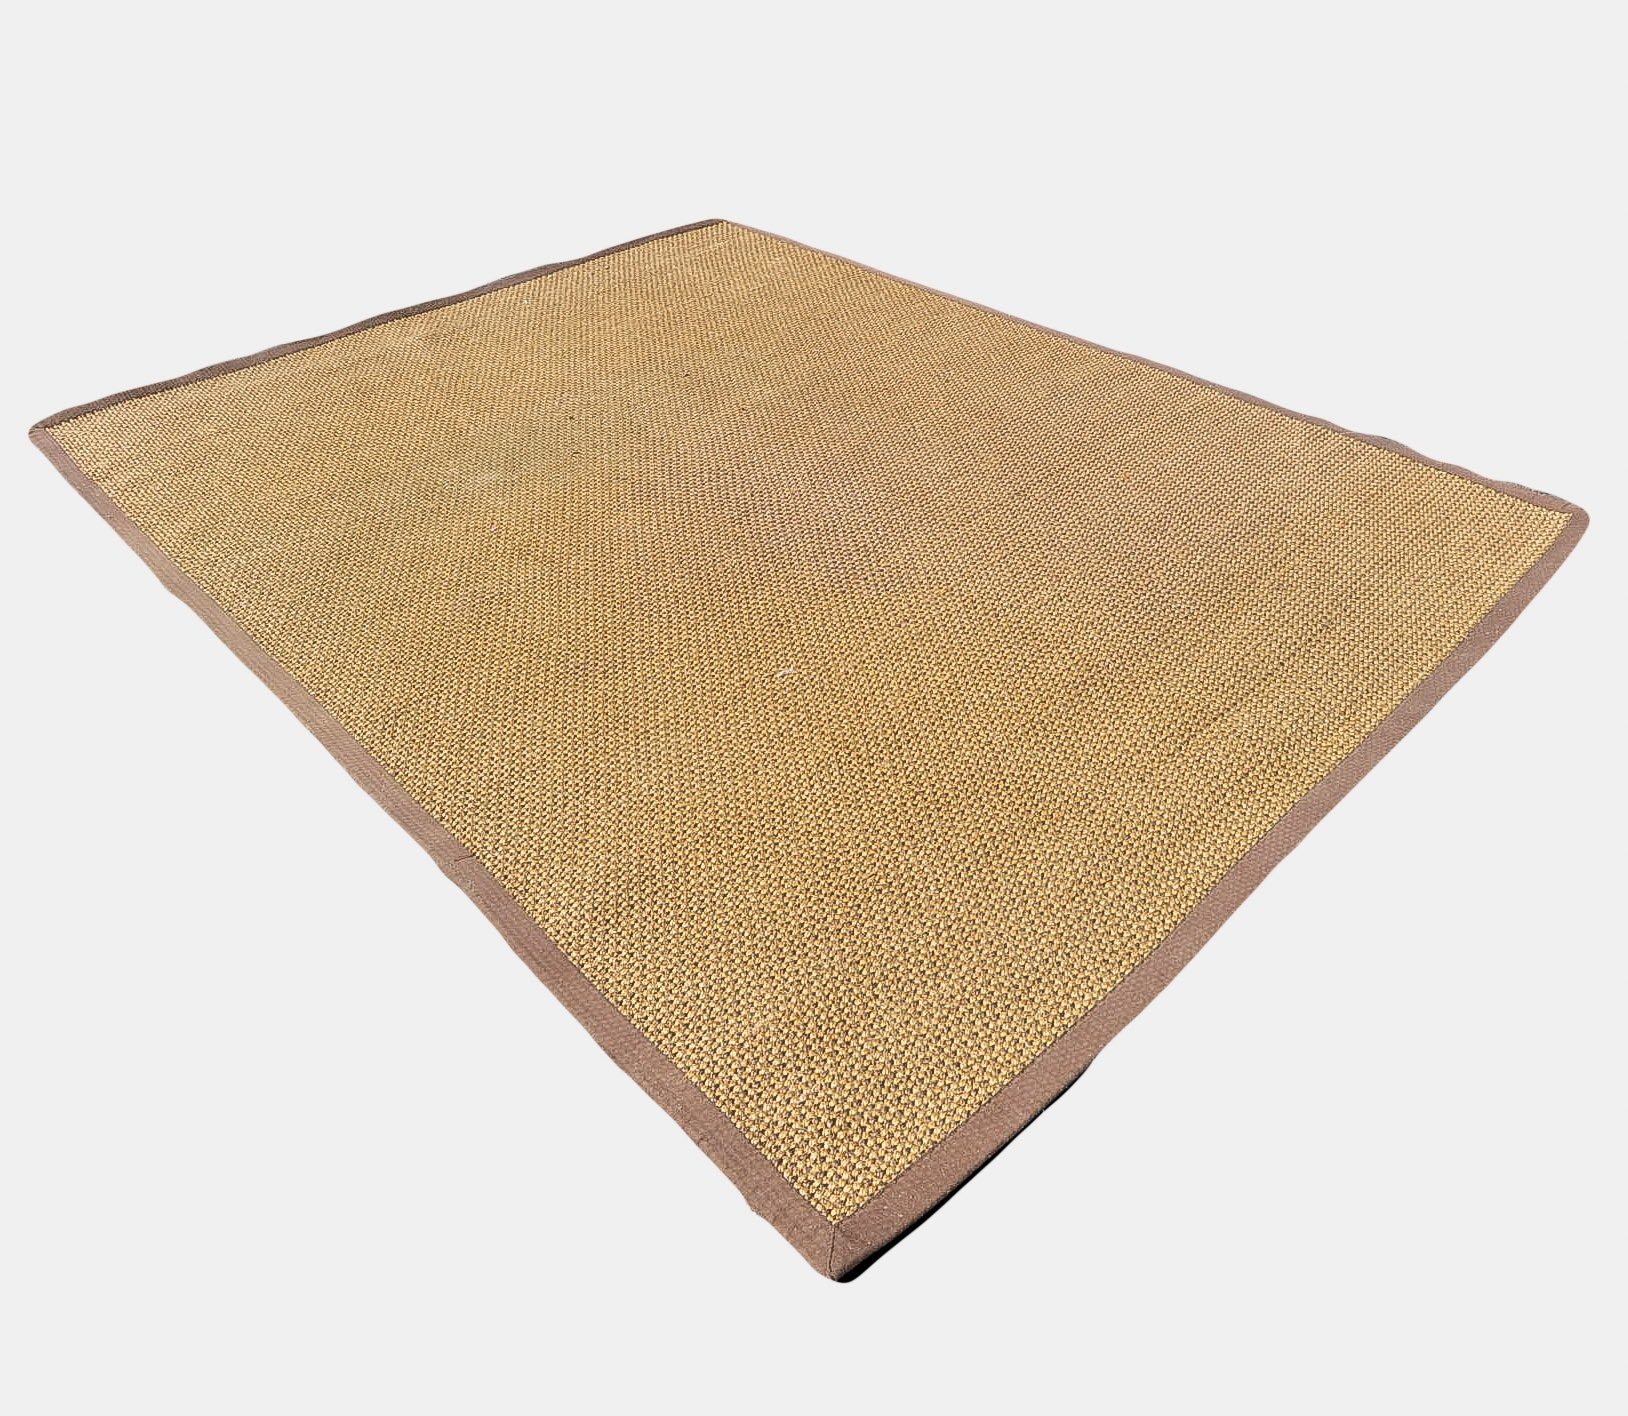 Large Woven Jute or Seagrass Area Rug